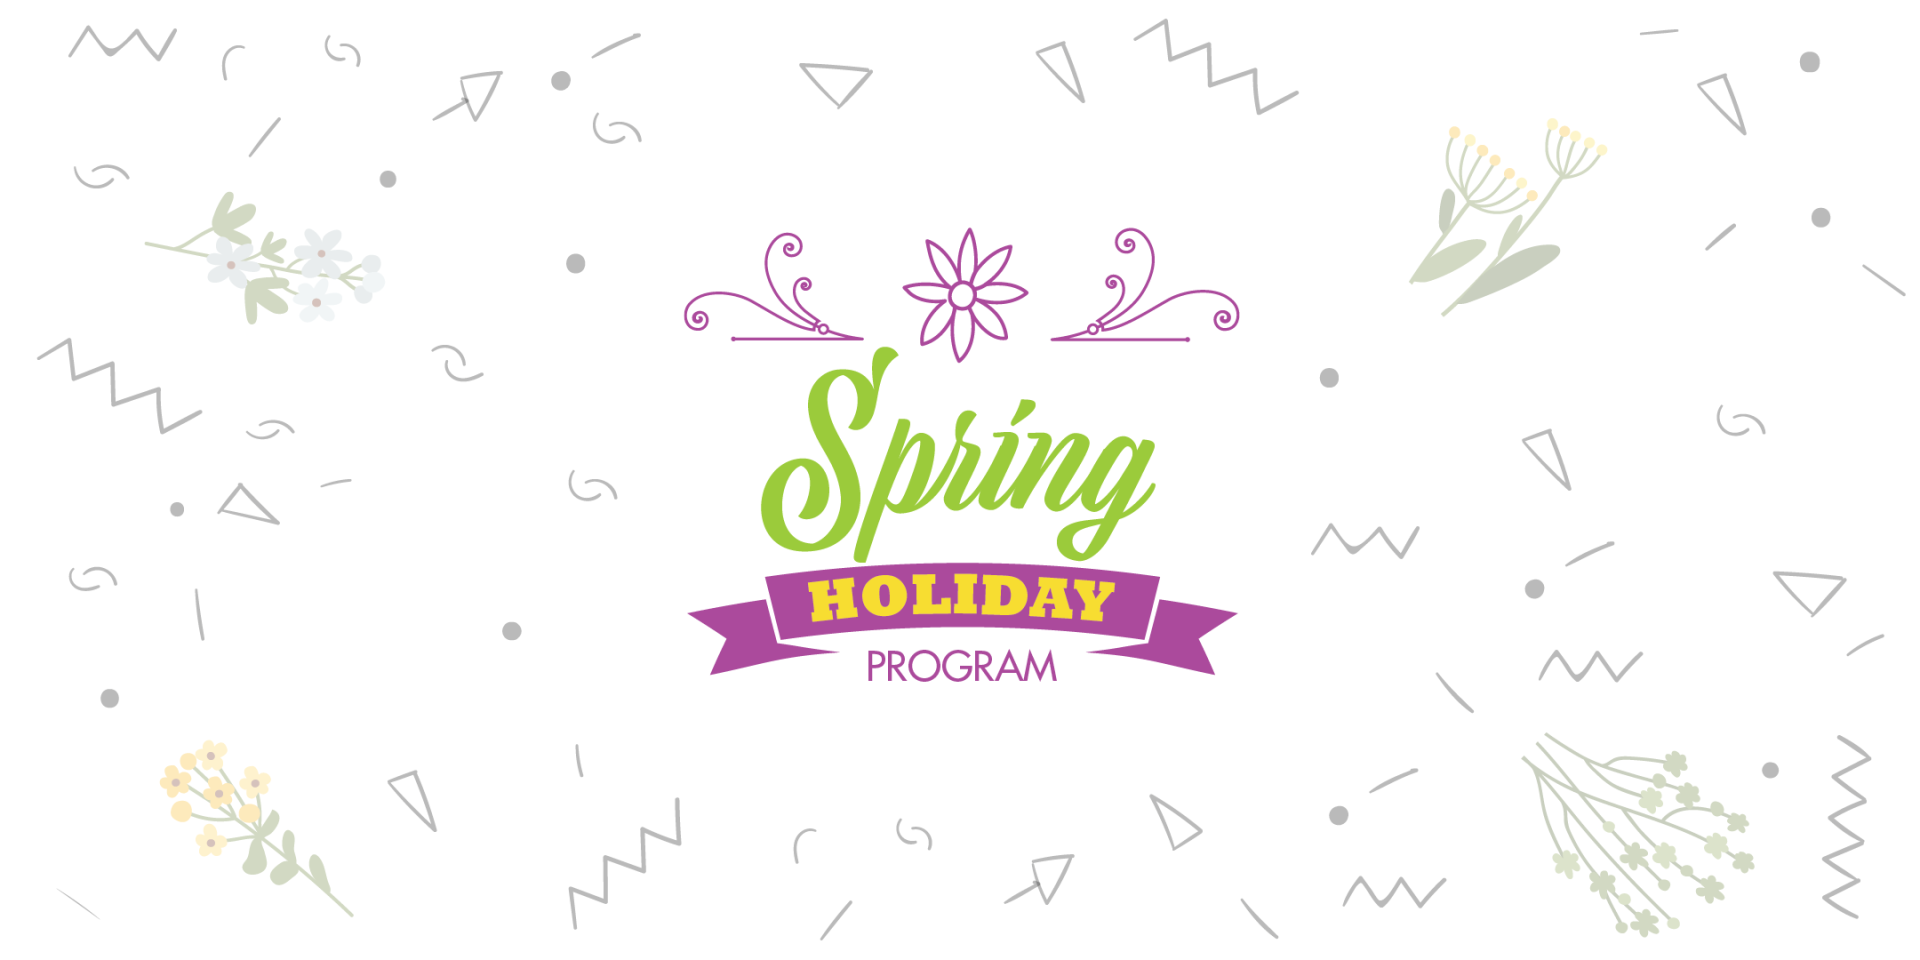 Spring School Holiday Program blossoms